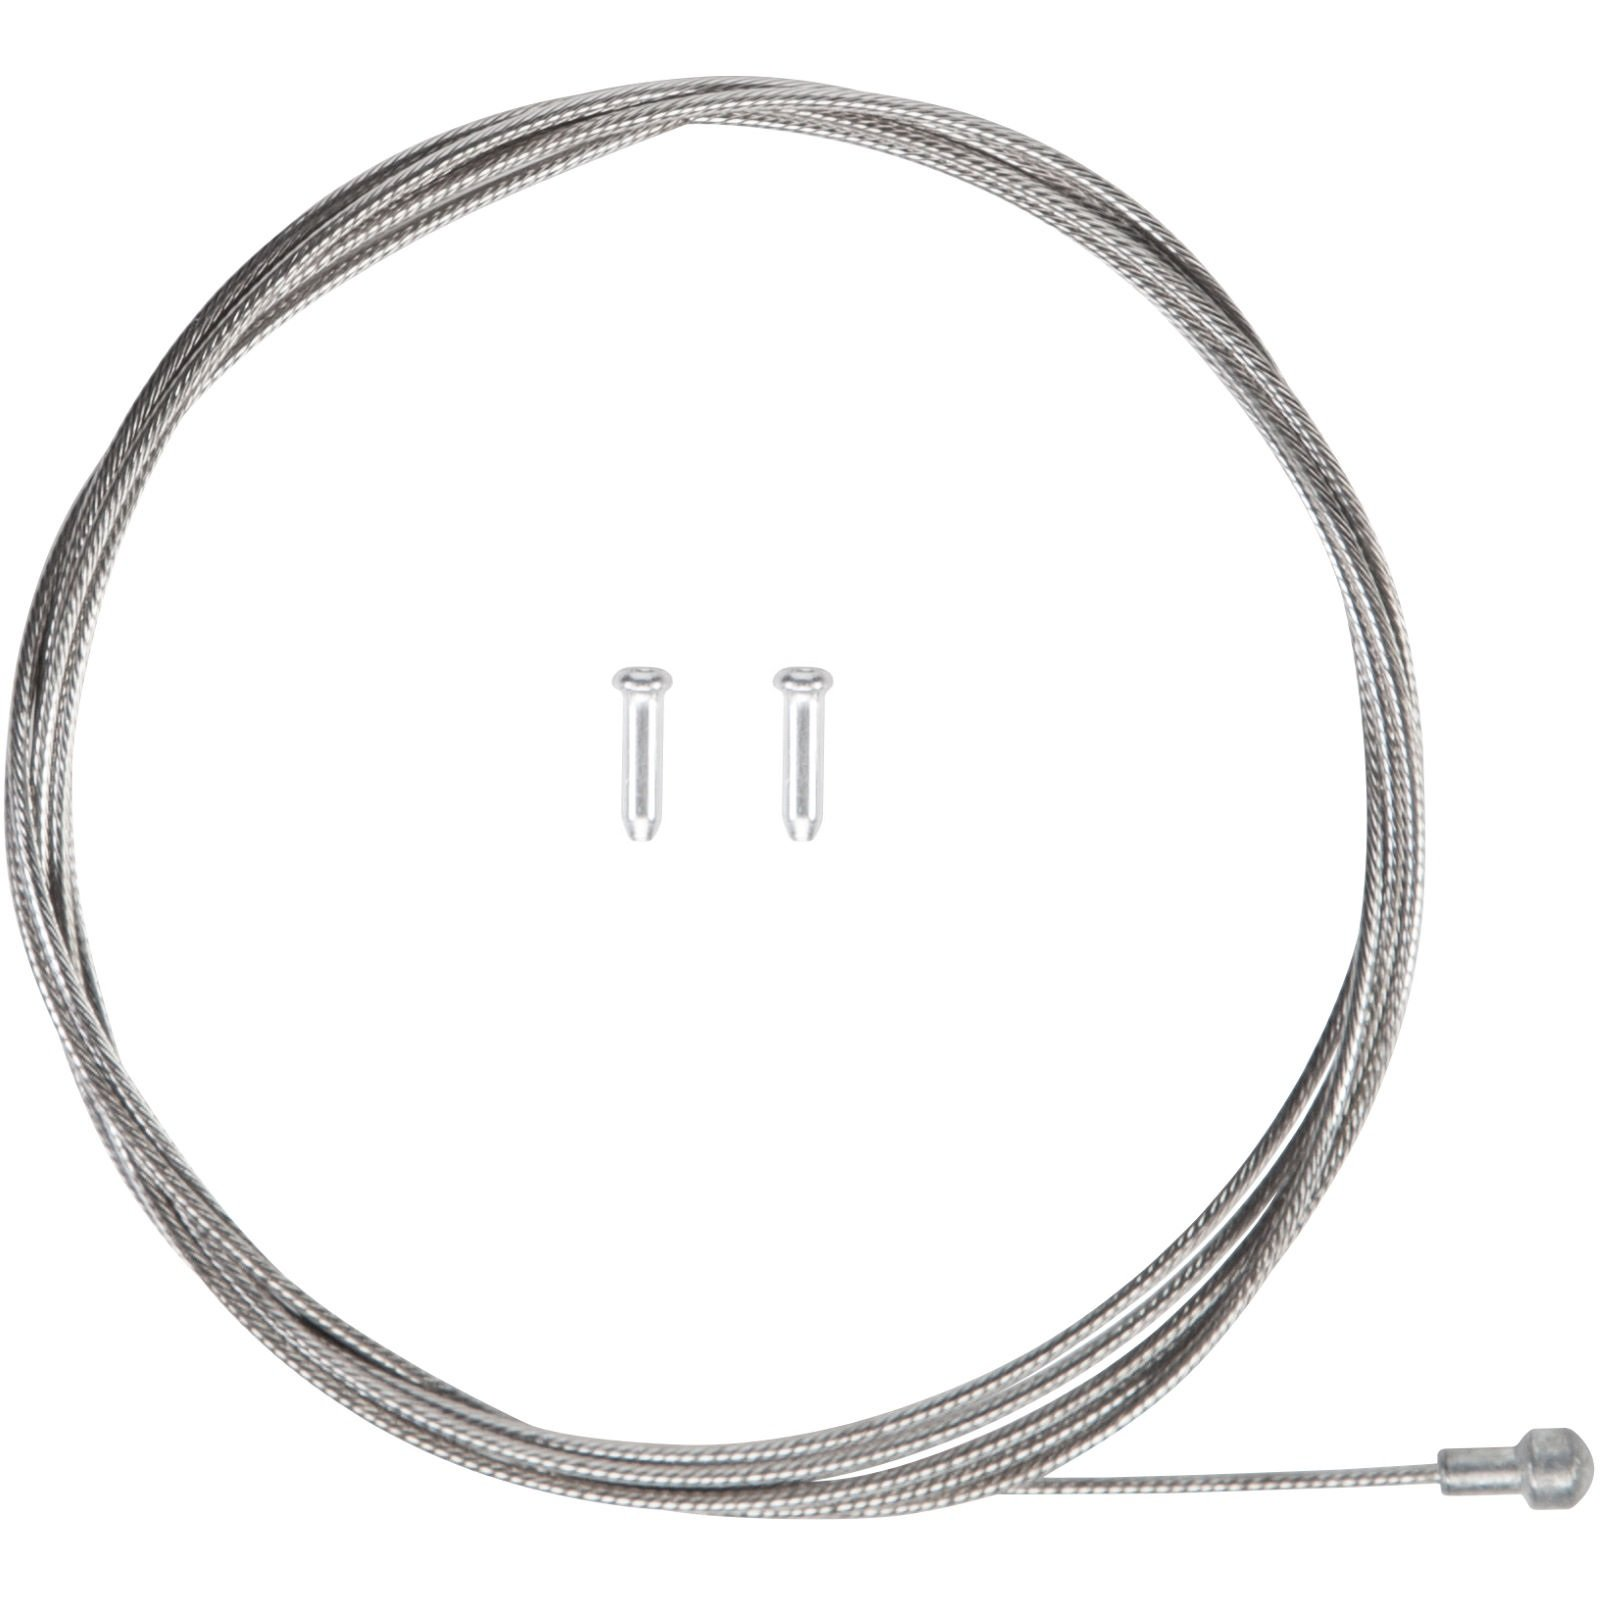 Jagwire Slick Stainless Steel Brake Cables Set